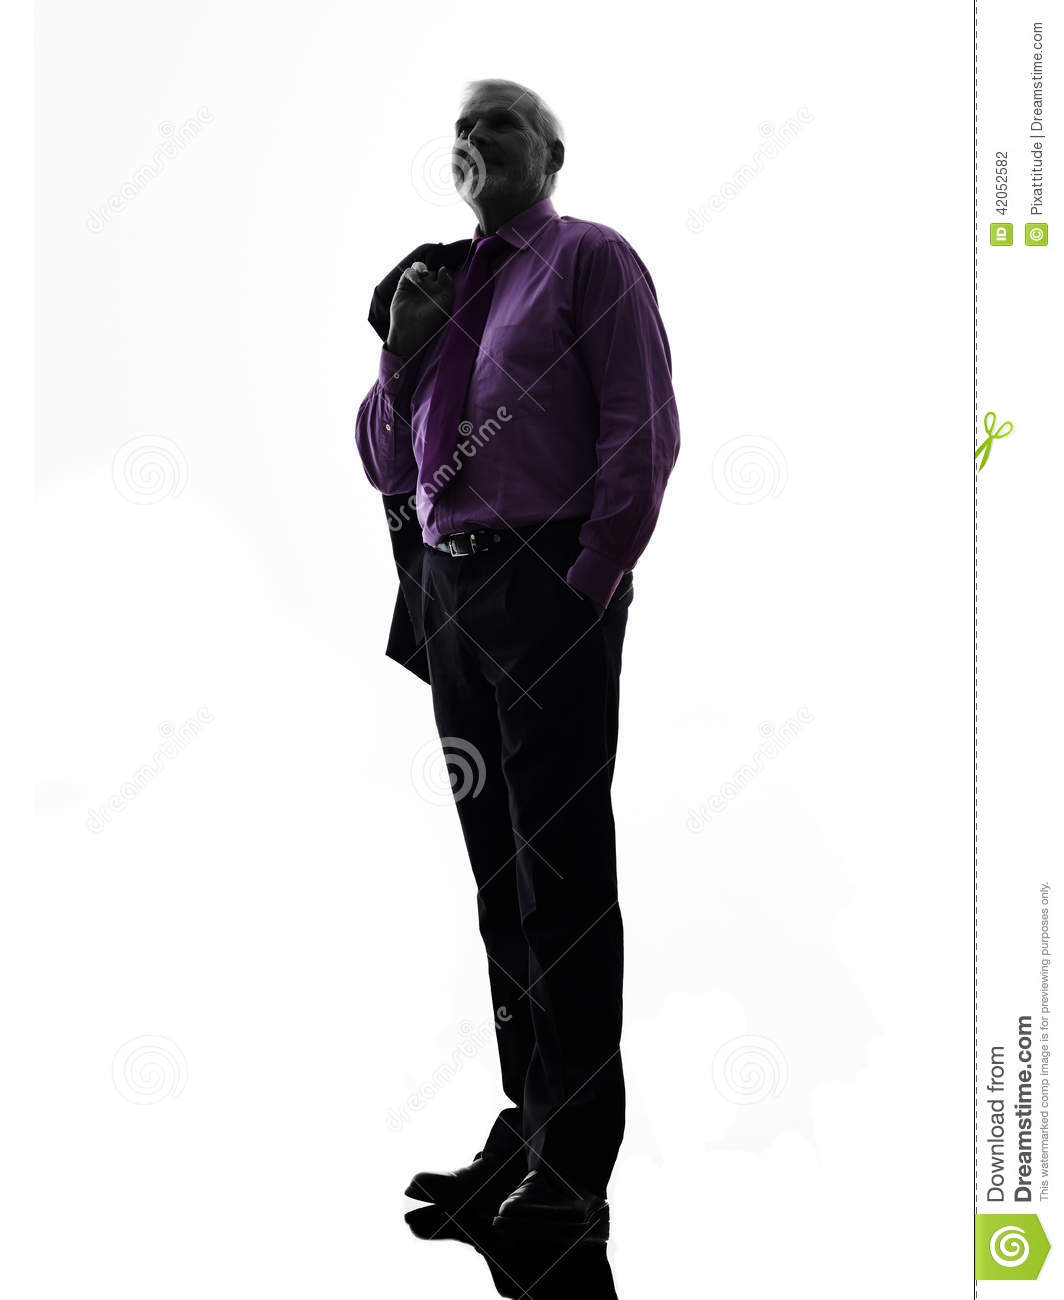 Senior Business Man Standing Looking Up Silhouette Stock